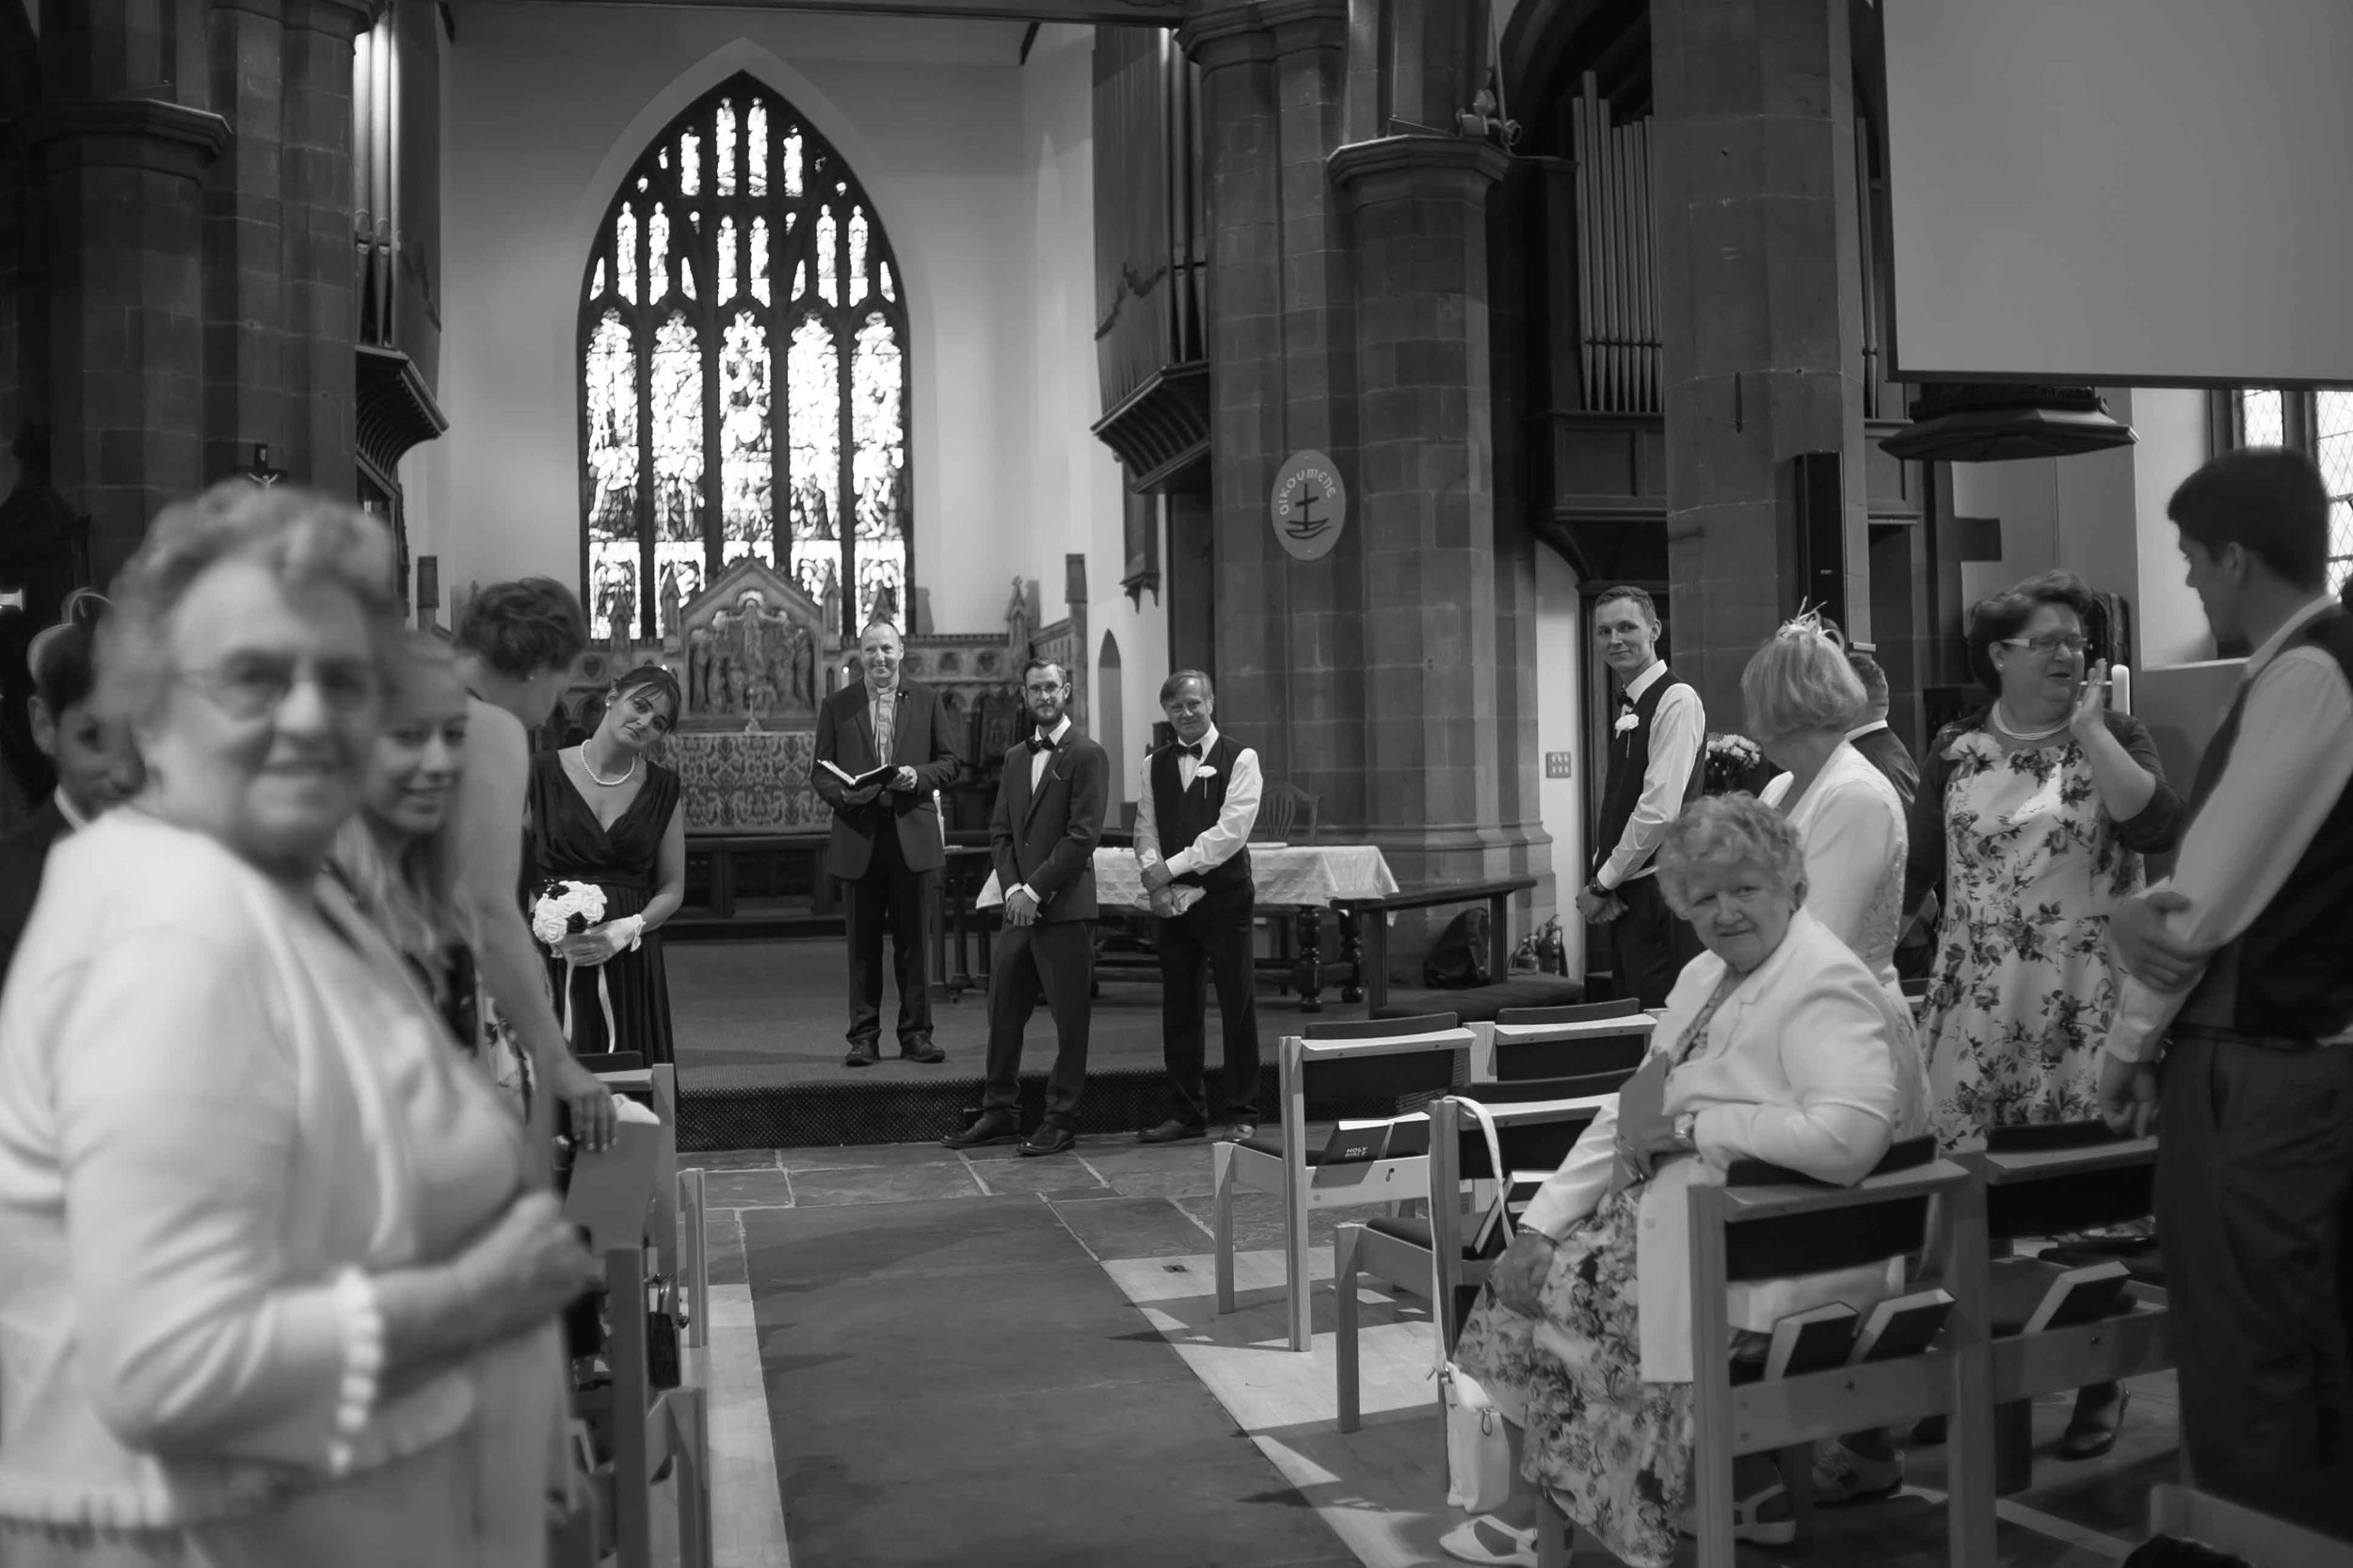 bradford-wedding-photography-keighley-shared-church-13.jpg